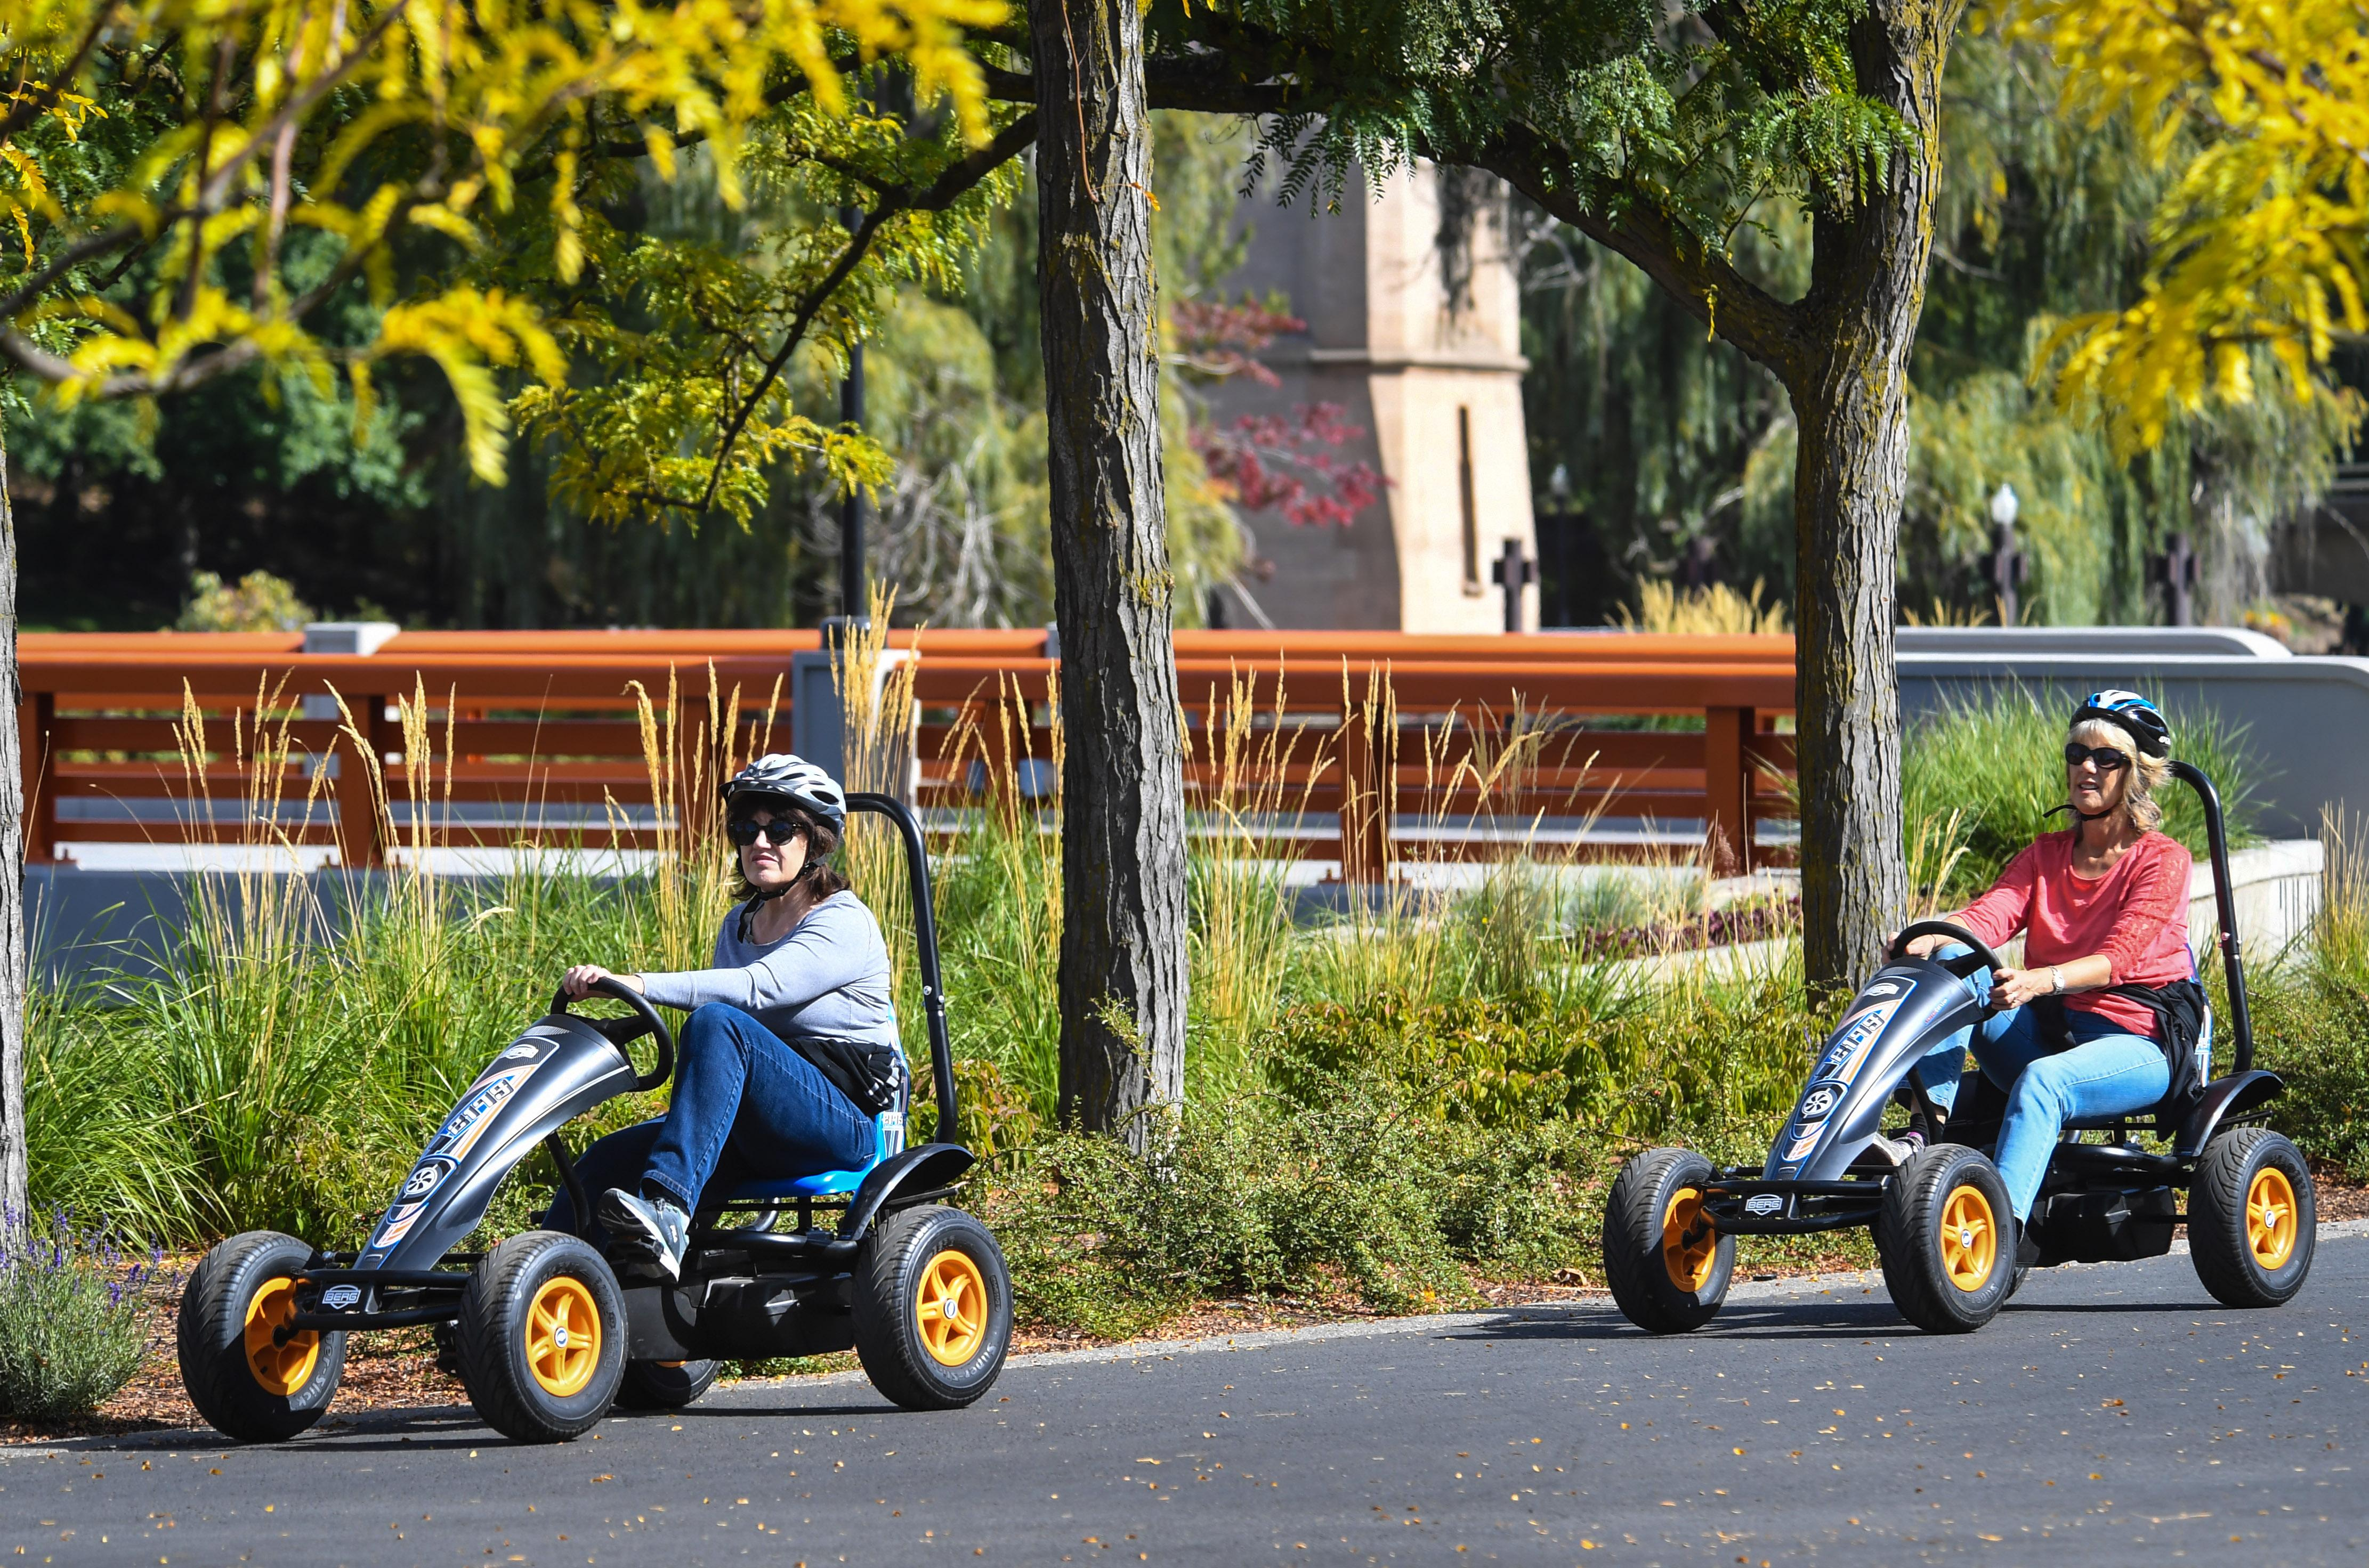 New 'pedal Cart' Rentals Appear In Riverfront Park